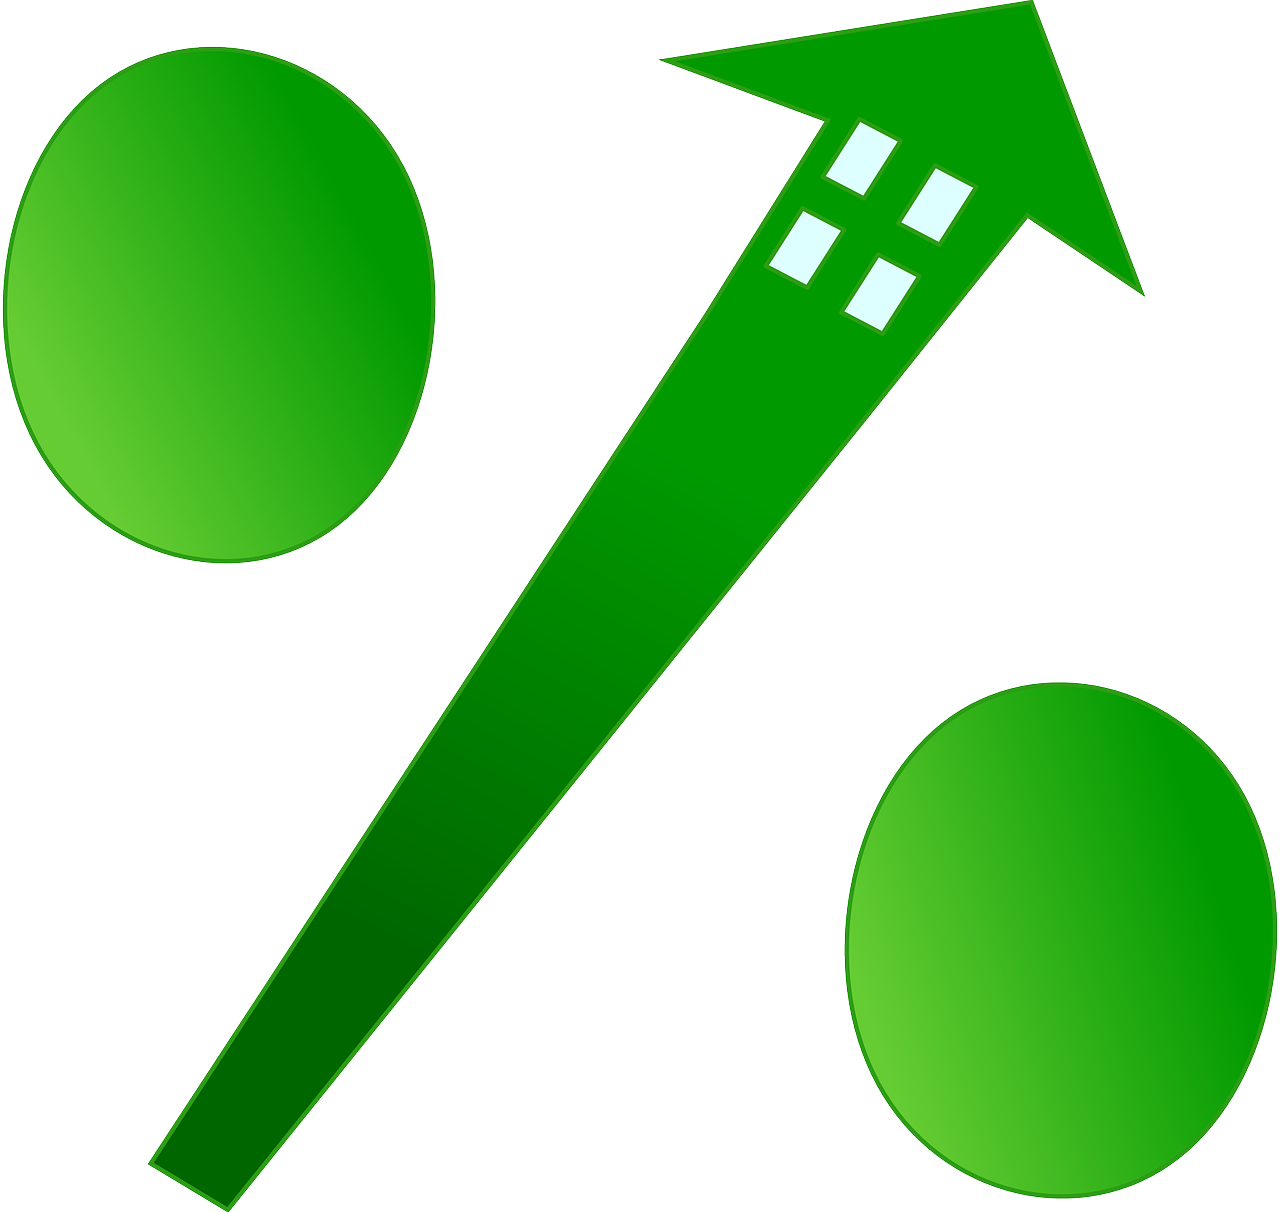 Percentage house representation of interest rate for mortgages